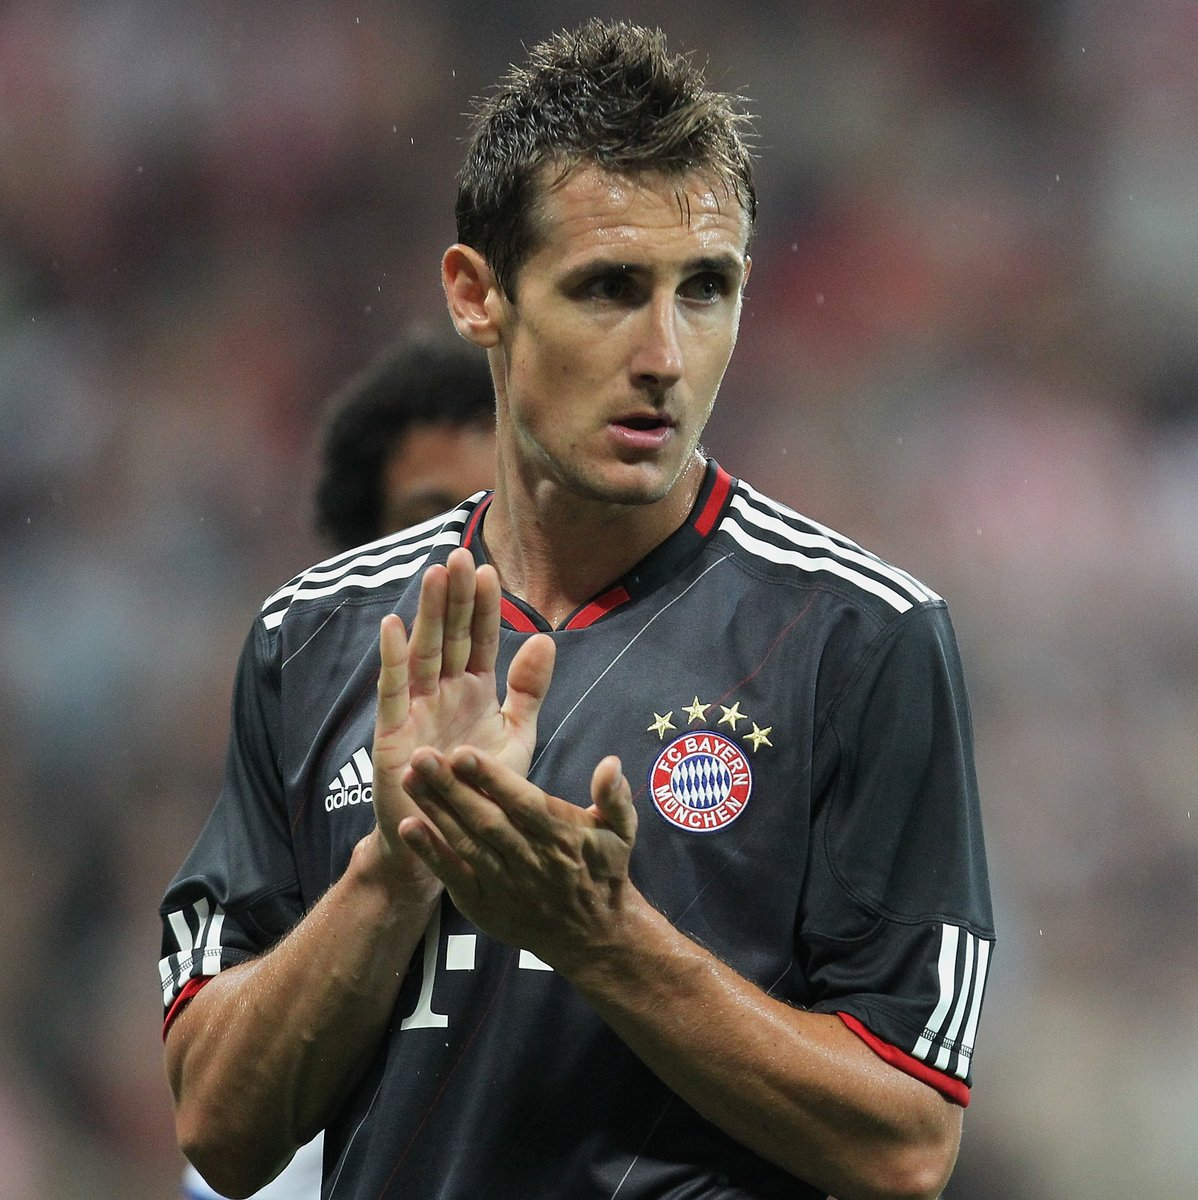 😀 Bayern assistant coach Miroslav Klose played for both clubs...   🔴 Bayern:  ⚽️5⃣3⃣   ⚪️🔵 Lazio: ⚽️ 6⃣3⃣  #UCL https://t.co/Qc8xo2Nba9